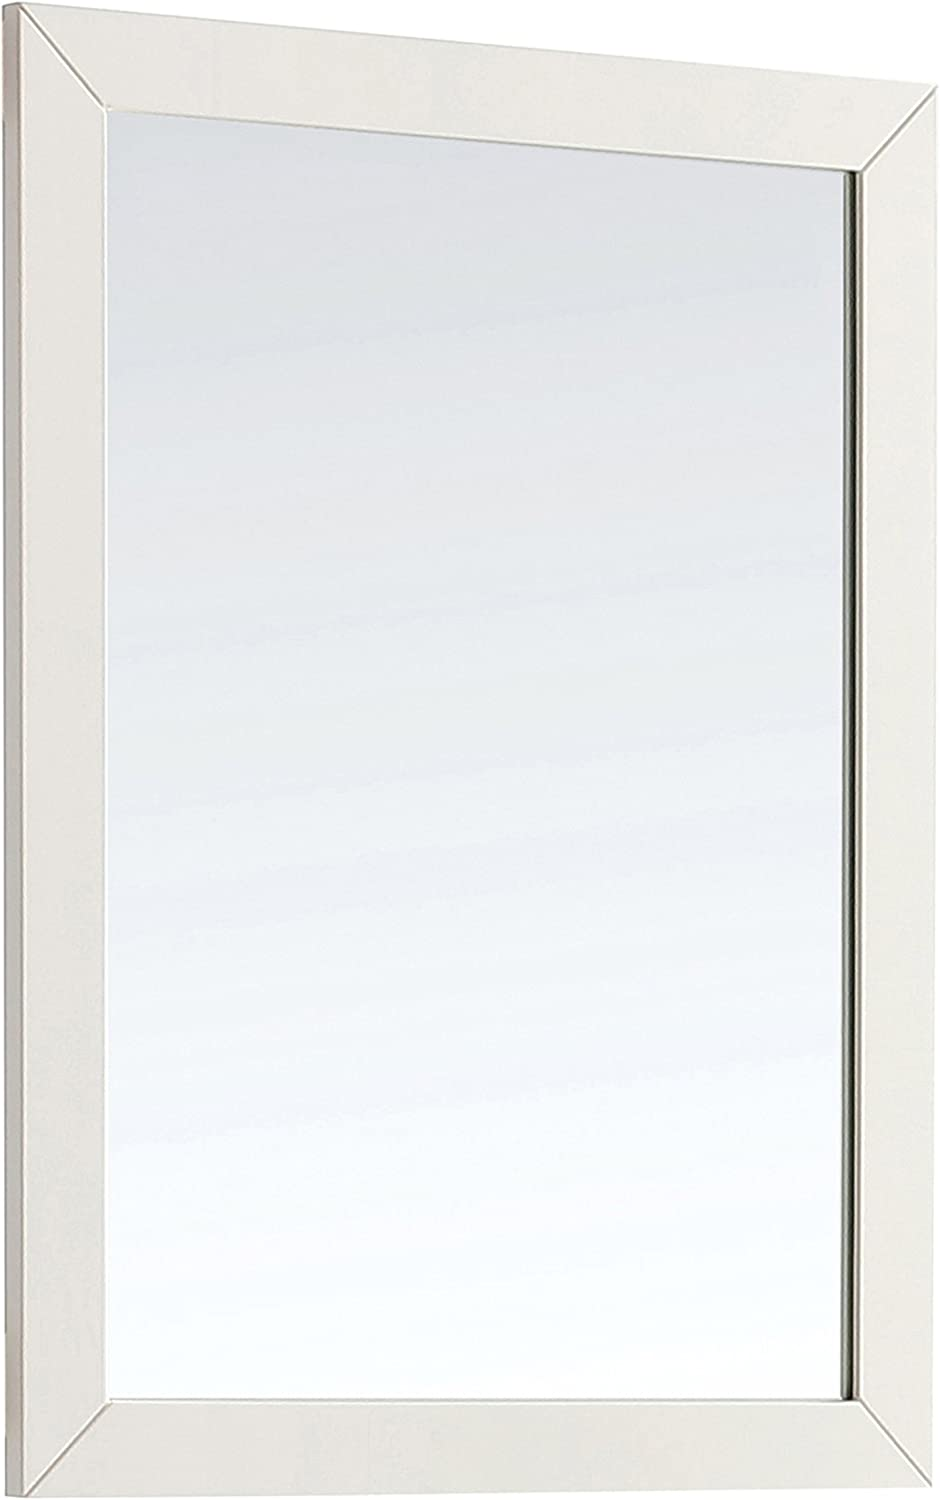 Simpli Home AXCMIR-3034-PG Paige 30 inch x 34 inch Bath Vanity Décor mirror in Off White